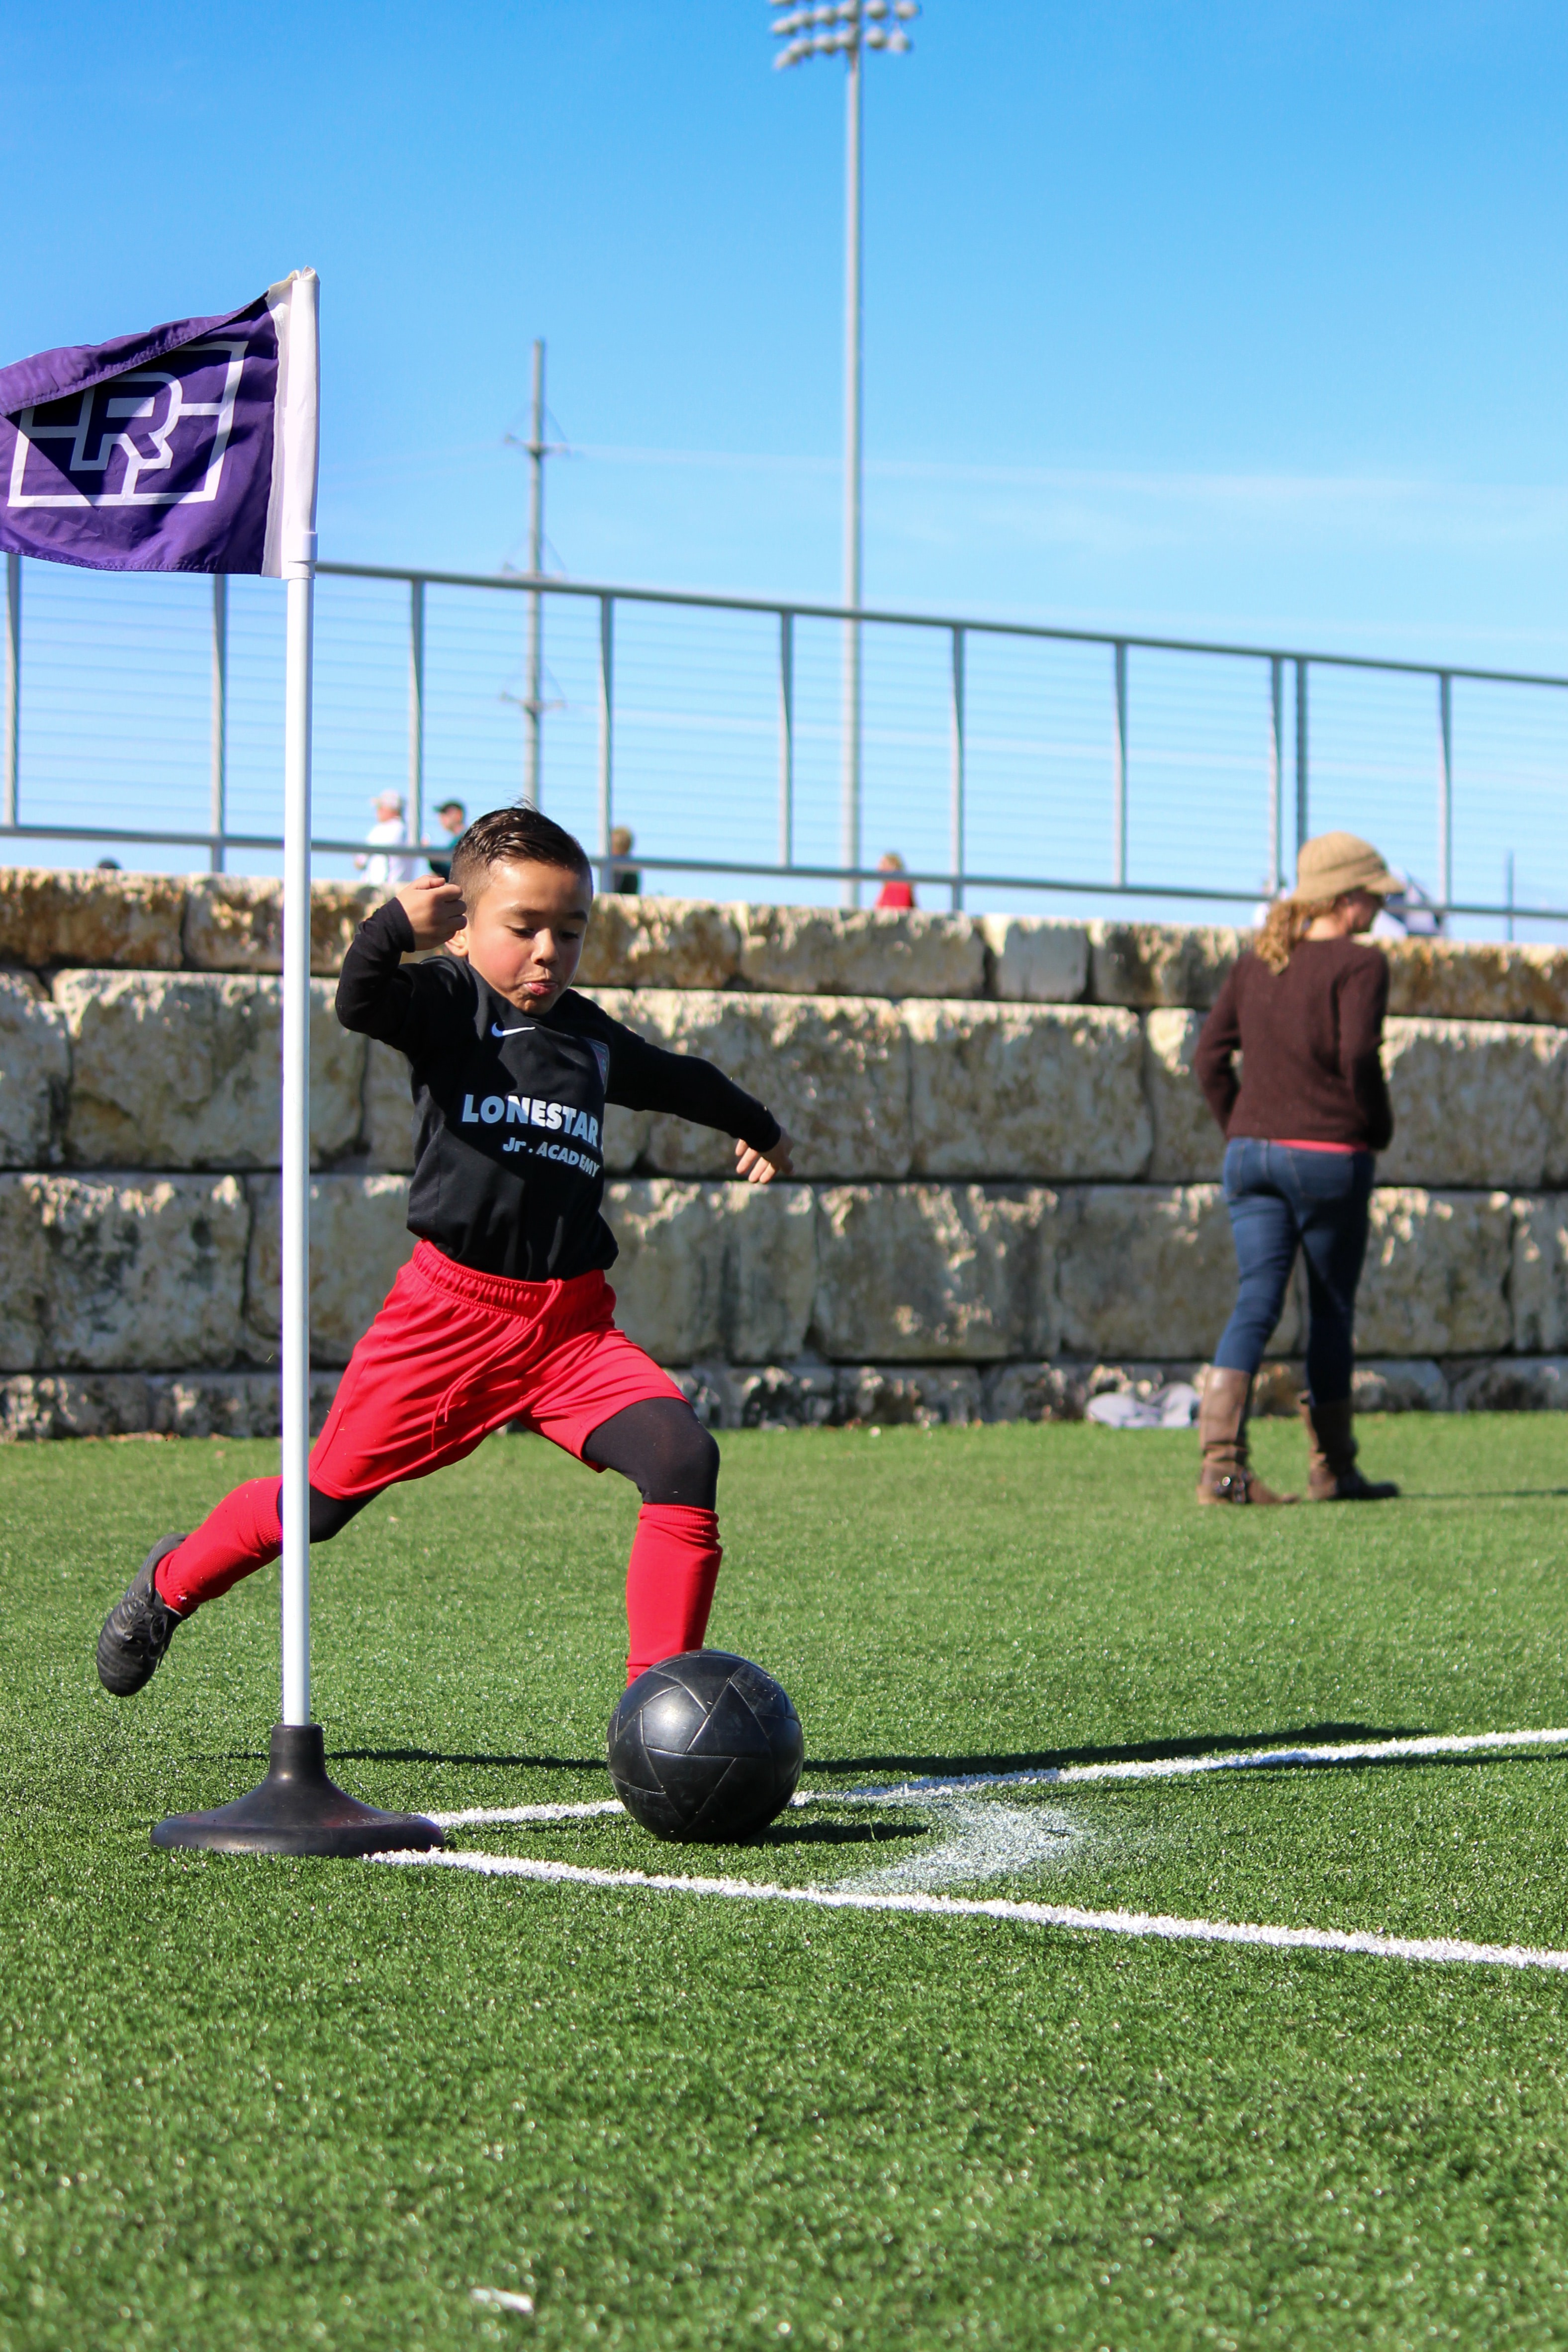 Young boy plays soccer.